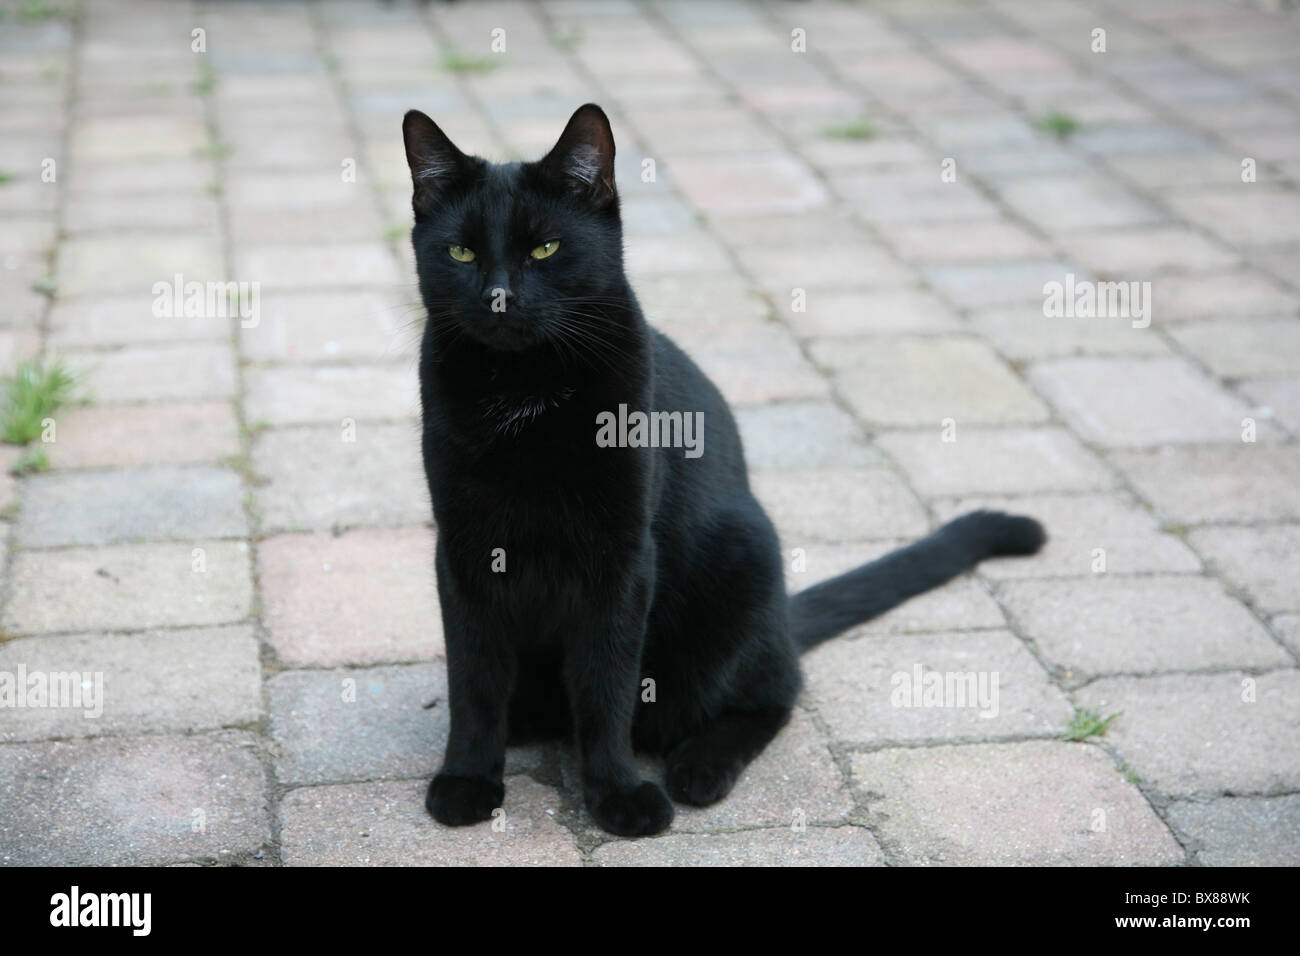 A black cat sits on a pavement looking off camera - Stock Image